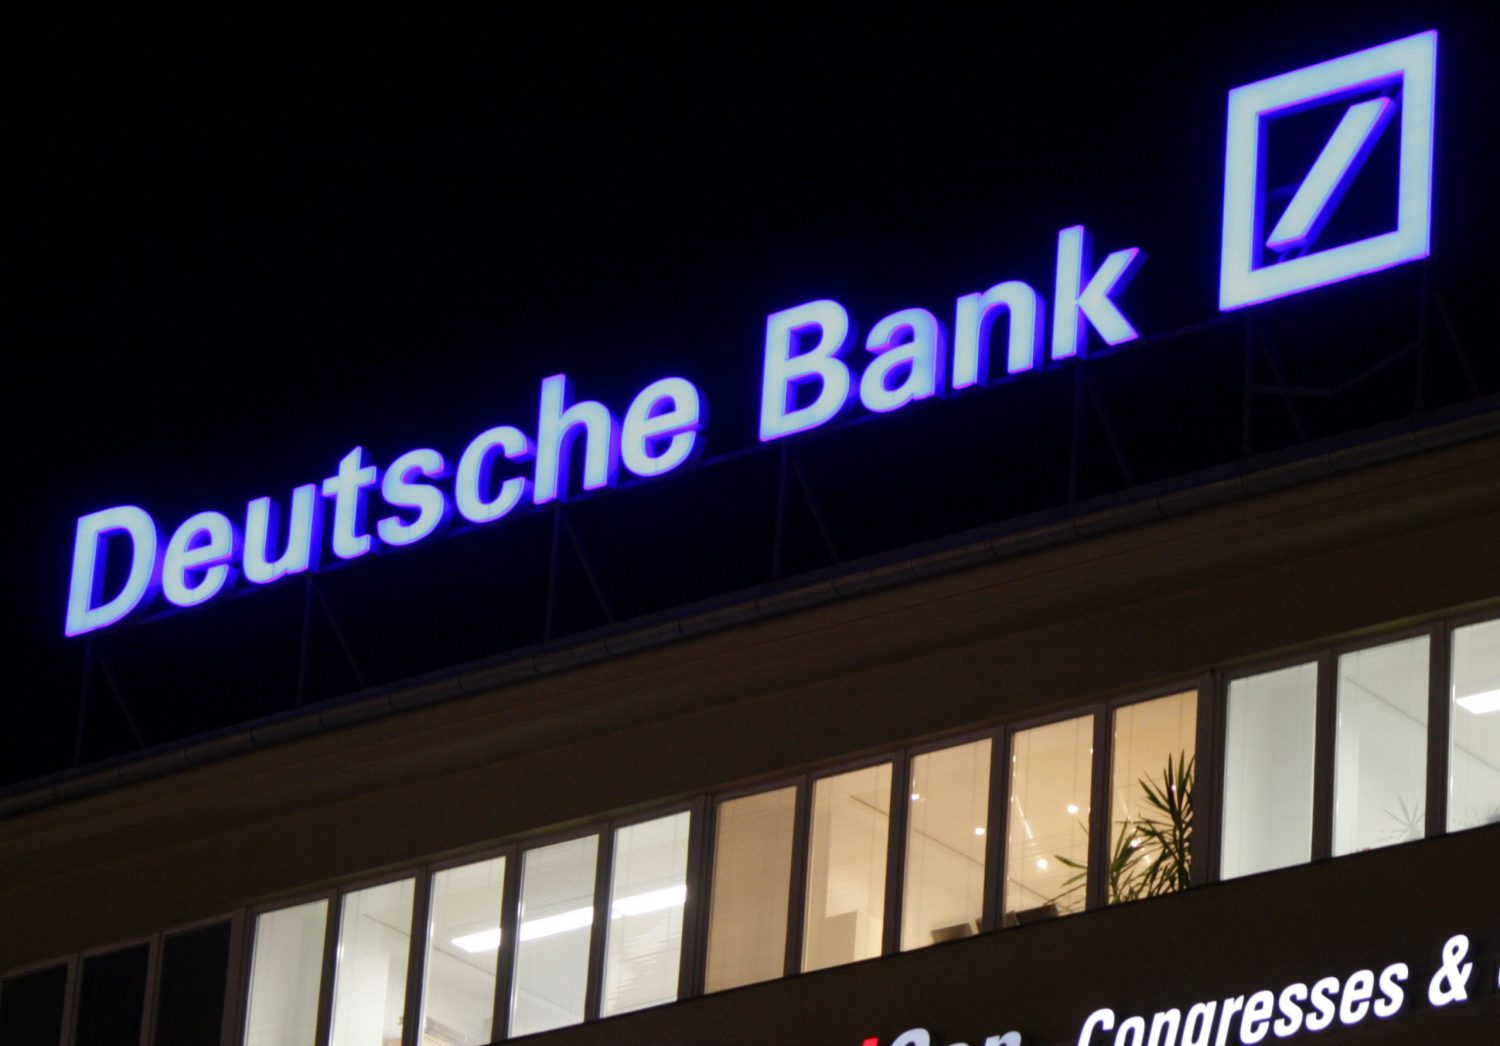 Deutsche Bank Says Digital Currencies Could Be Mainstream in 2 Years - CoinDesk